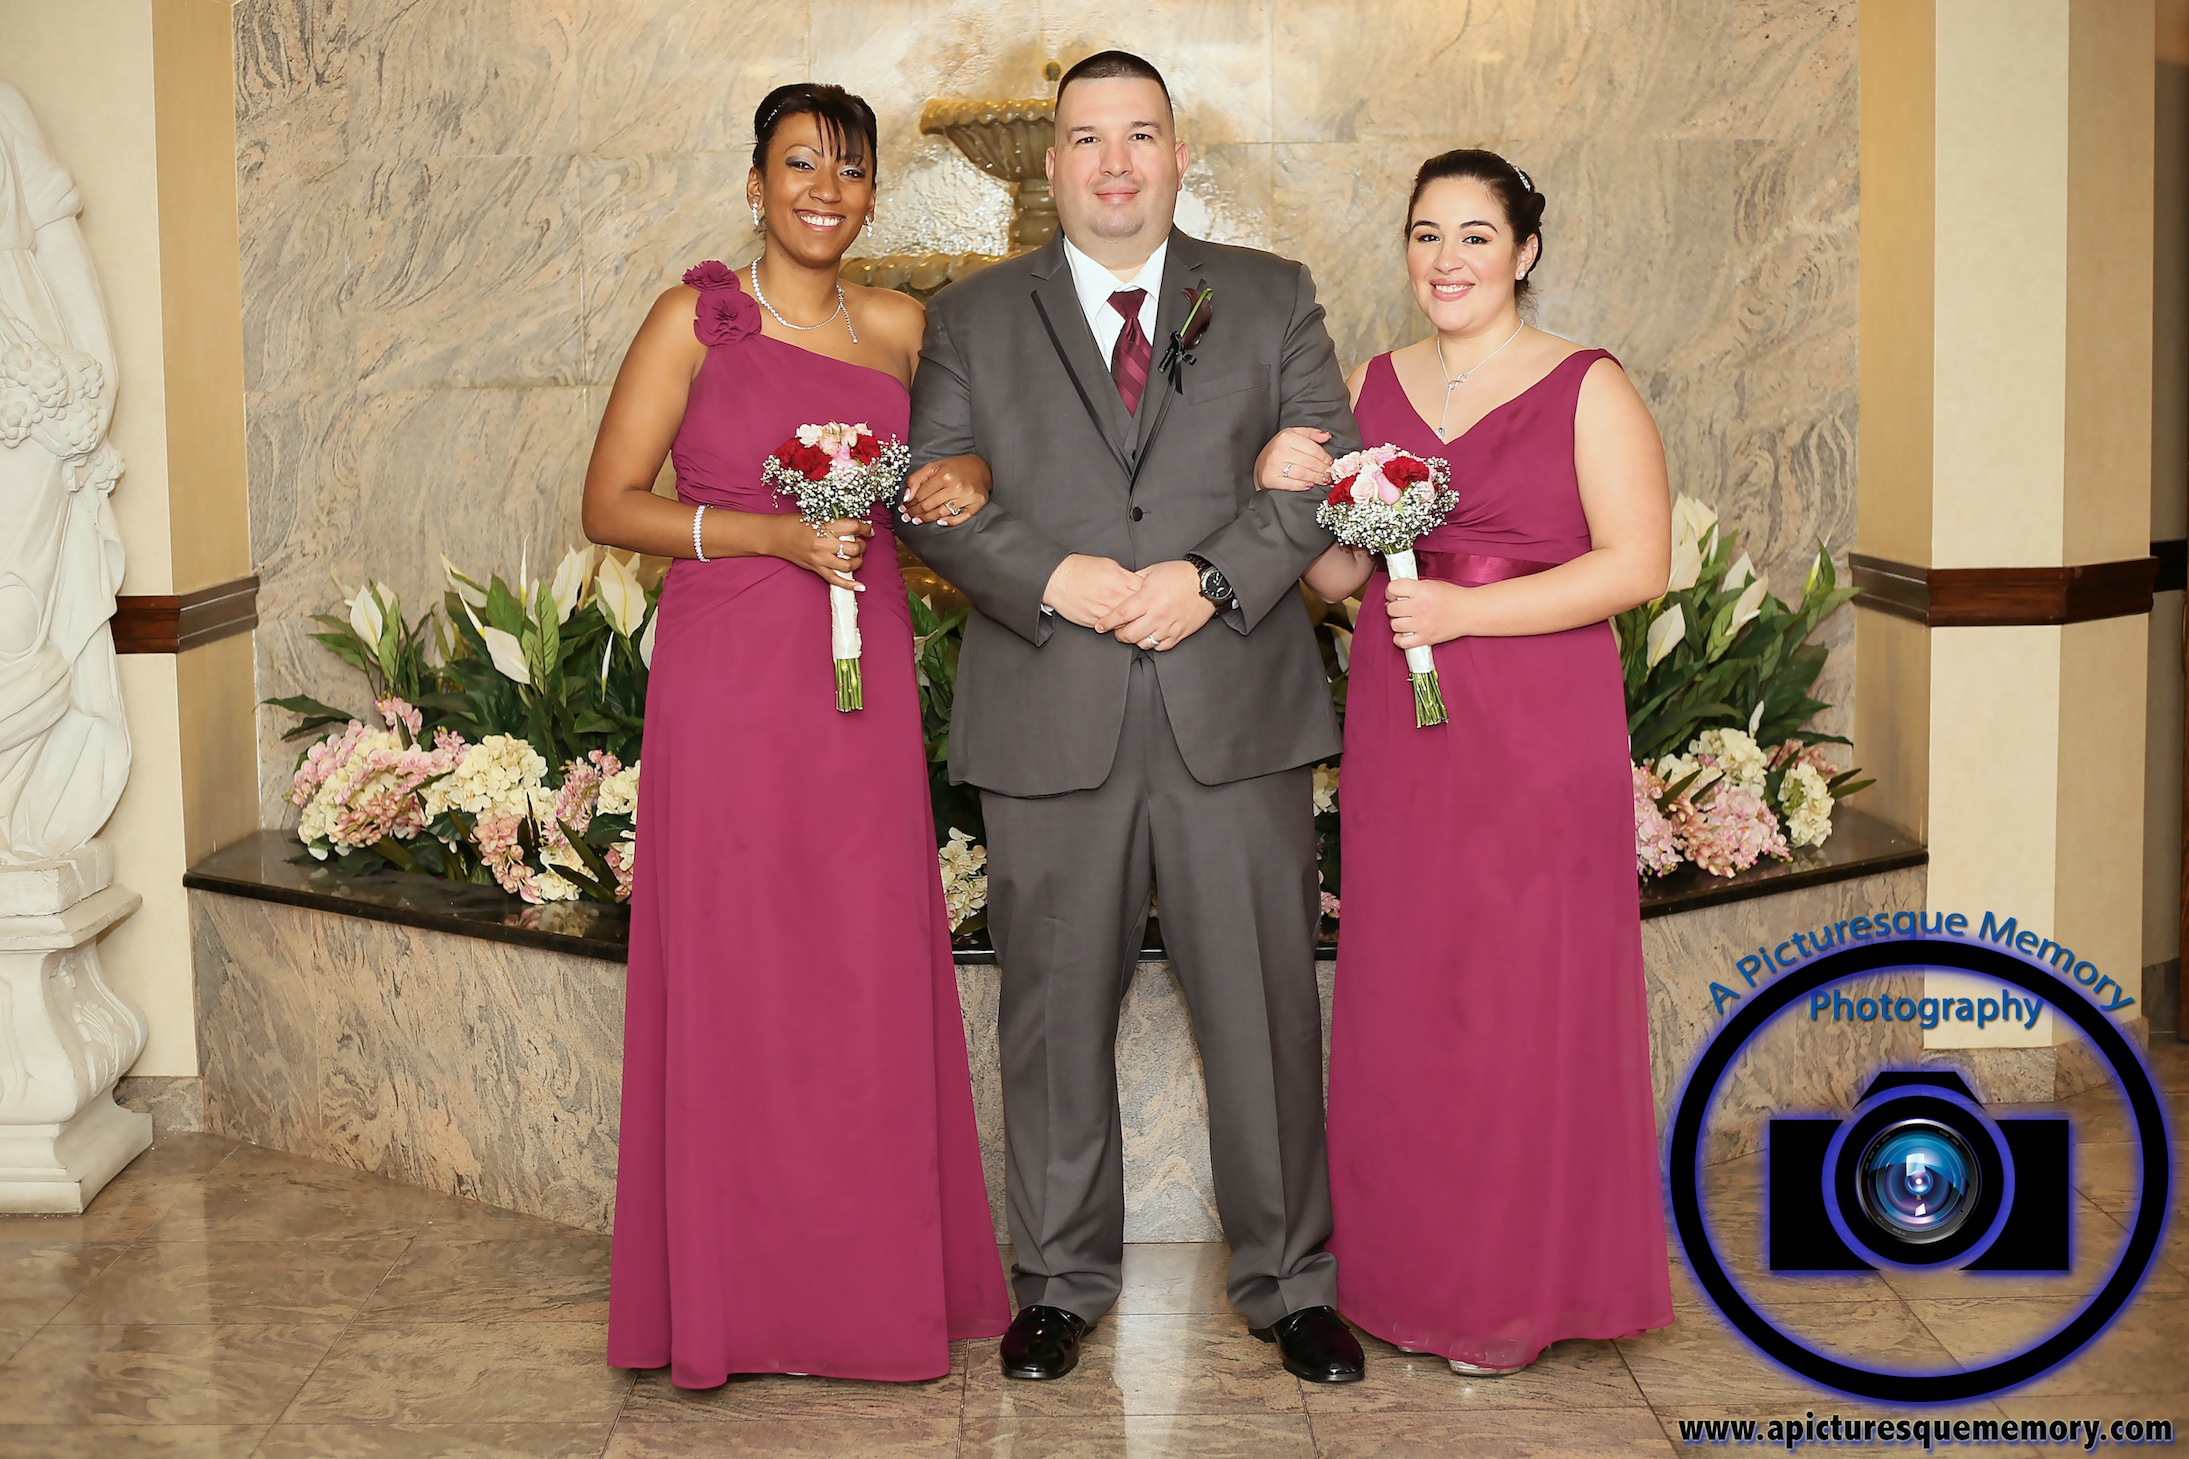 #njwedding, #njweddingphotography, #southbrunswickweddingphotographer#weddingphotos, #apicturesquememoryphotography, #pierresofsouthbrunswickweddingphotographer, #groomandbridesmaids, #groom